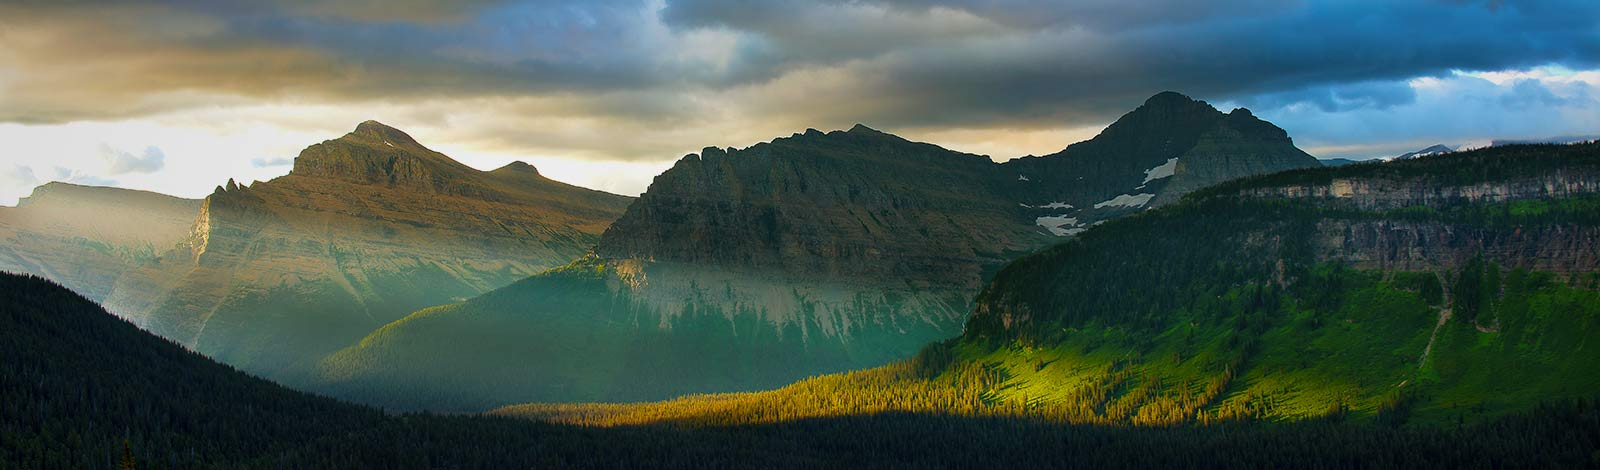 Landscape Photography - Sunset over Glacier National Park